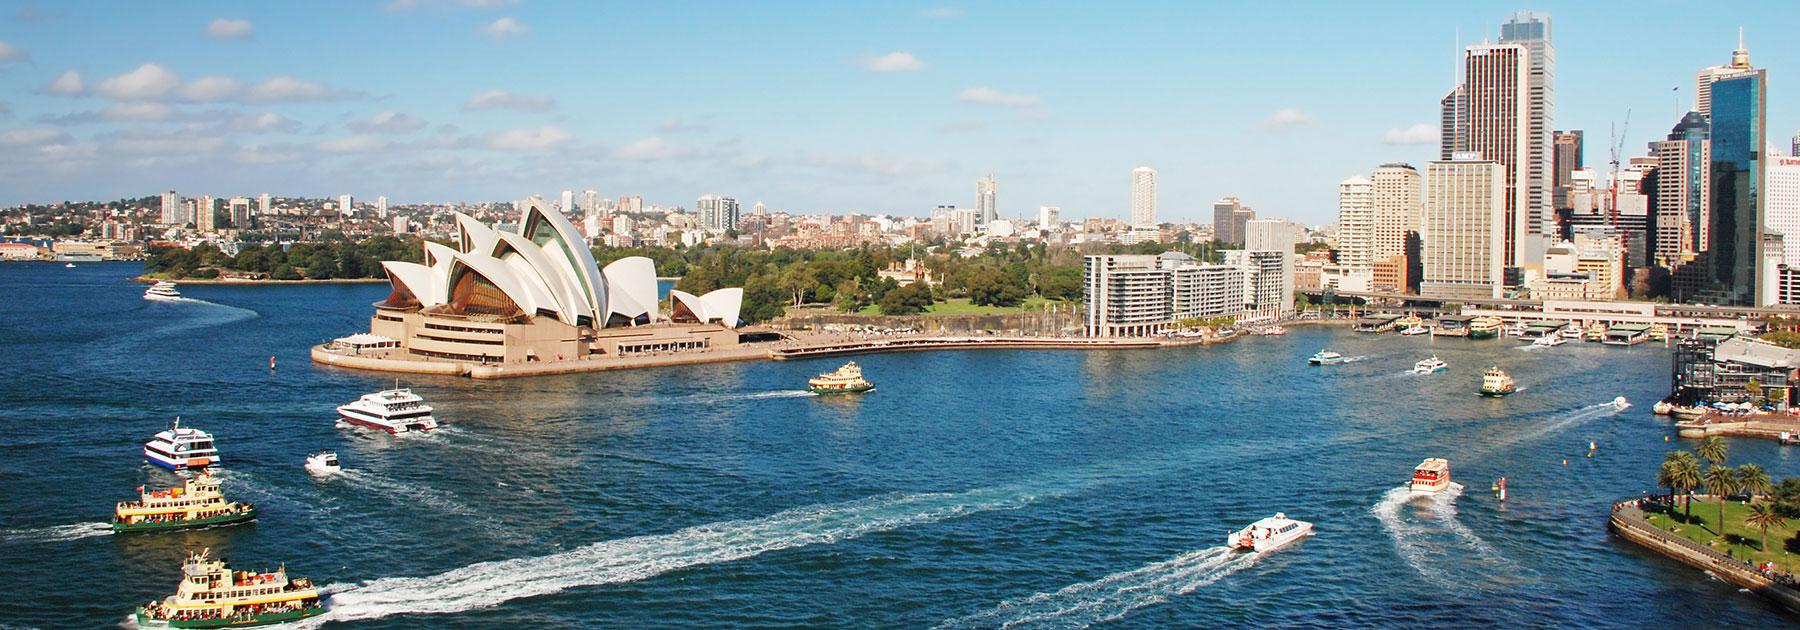 Australia Vacations With Airfare Trip To Australia From Gotoday - Vacation to australia